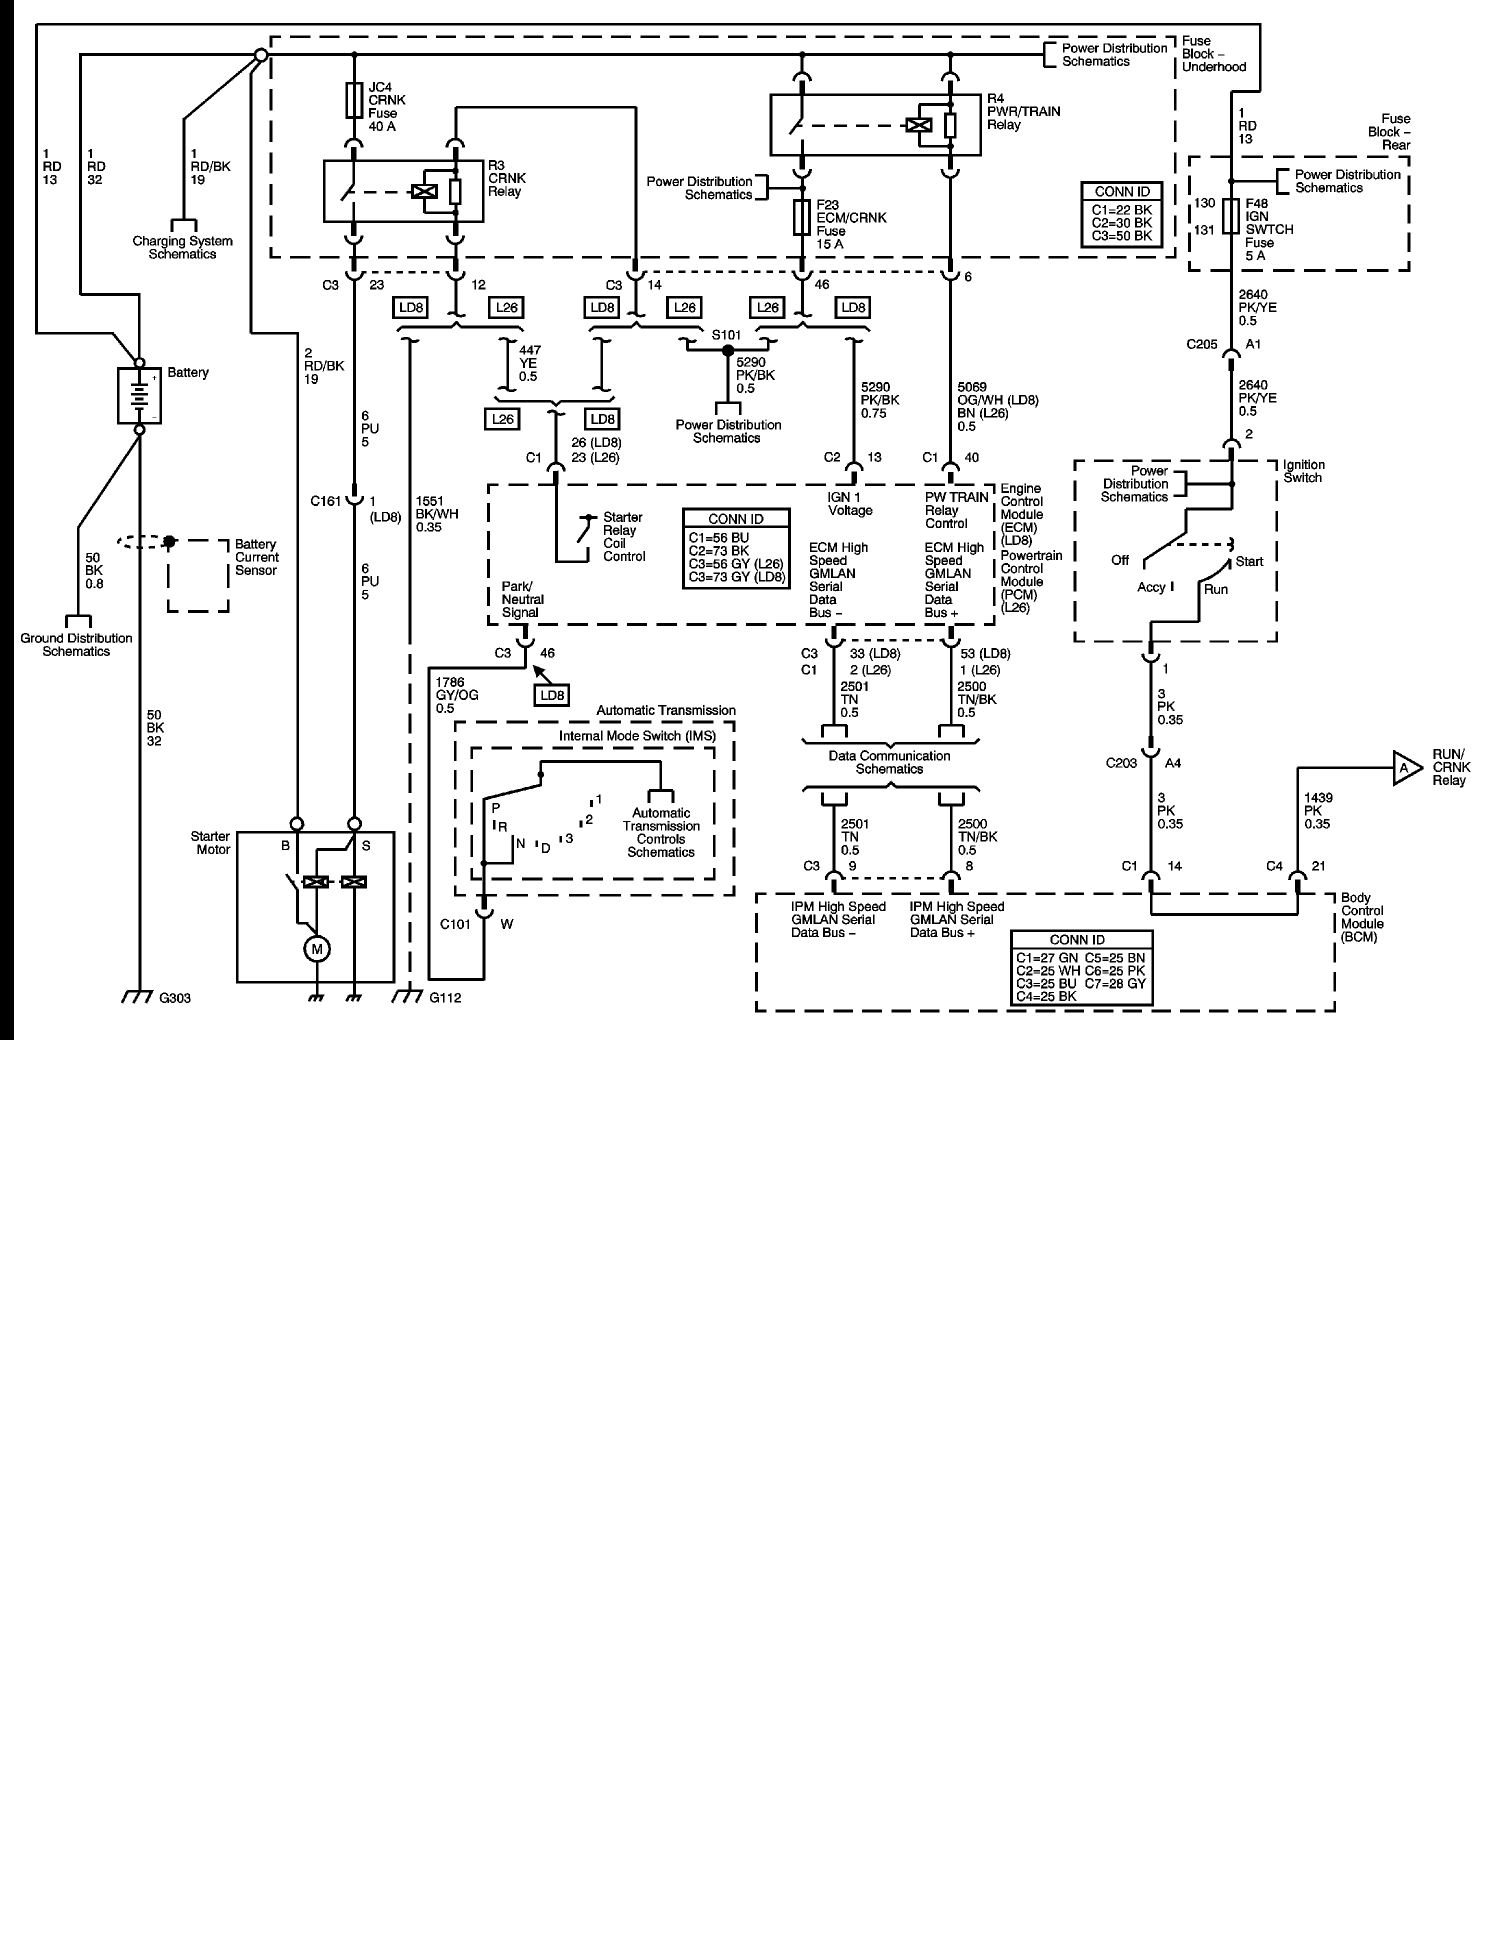 95 mazda b2300 fuse box diagram